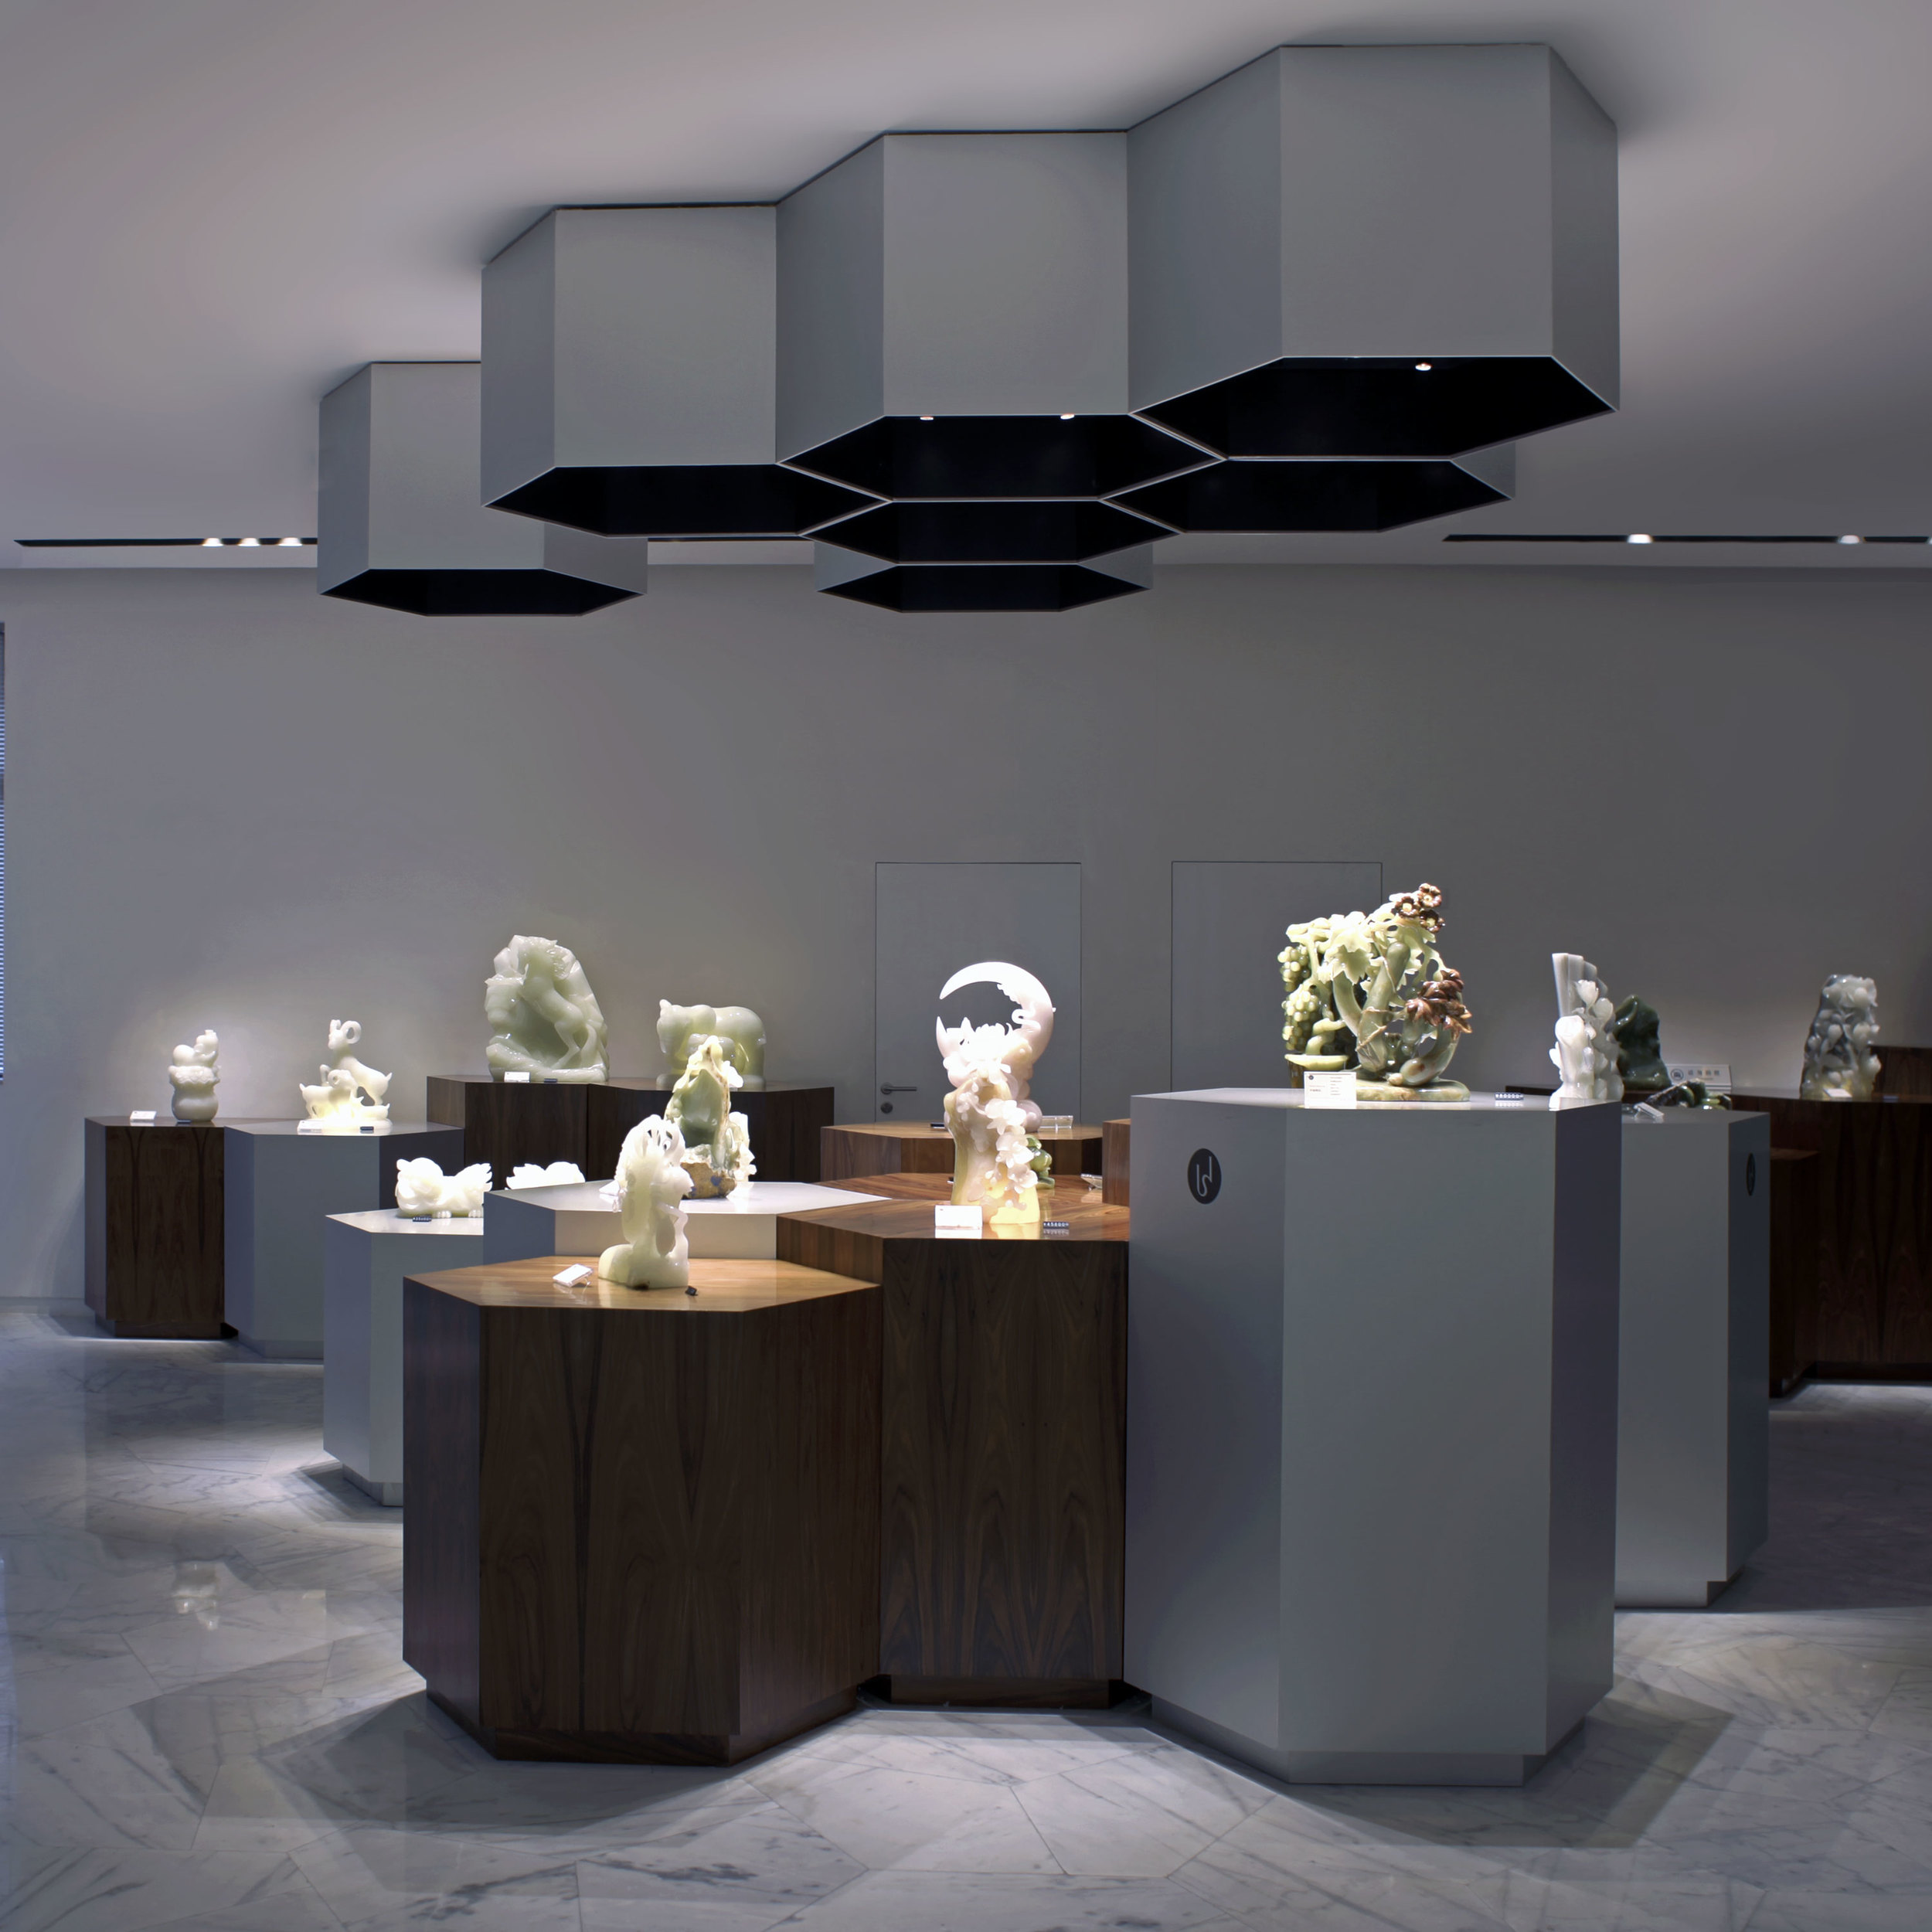 Interior design of a display space for onyx art pieces in Shanghai